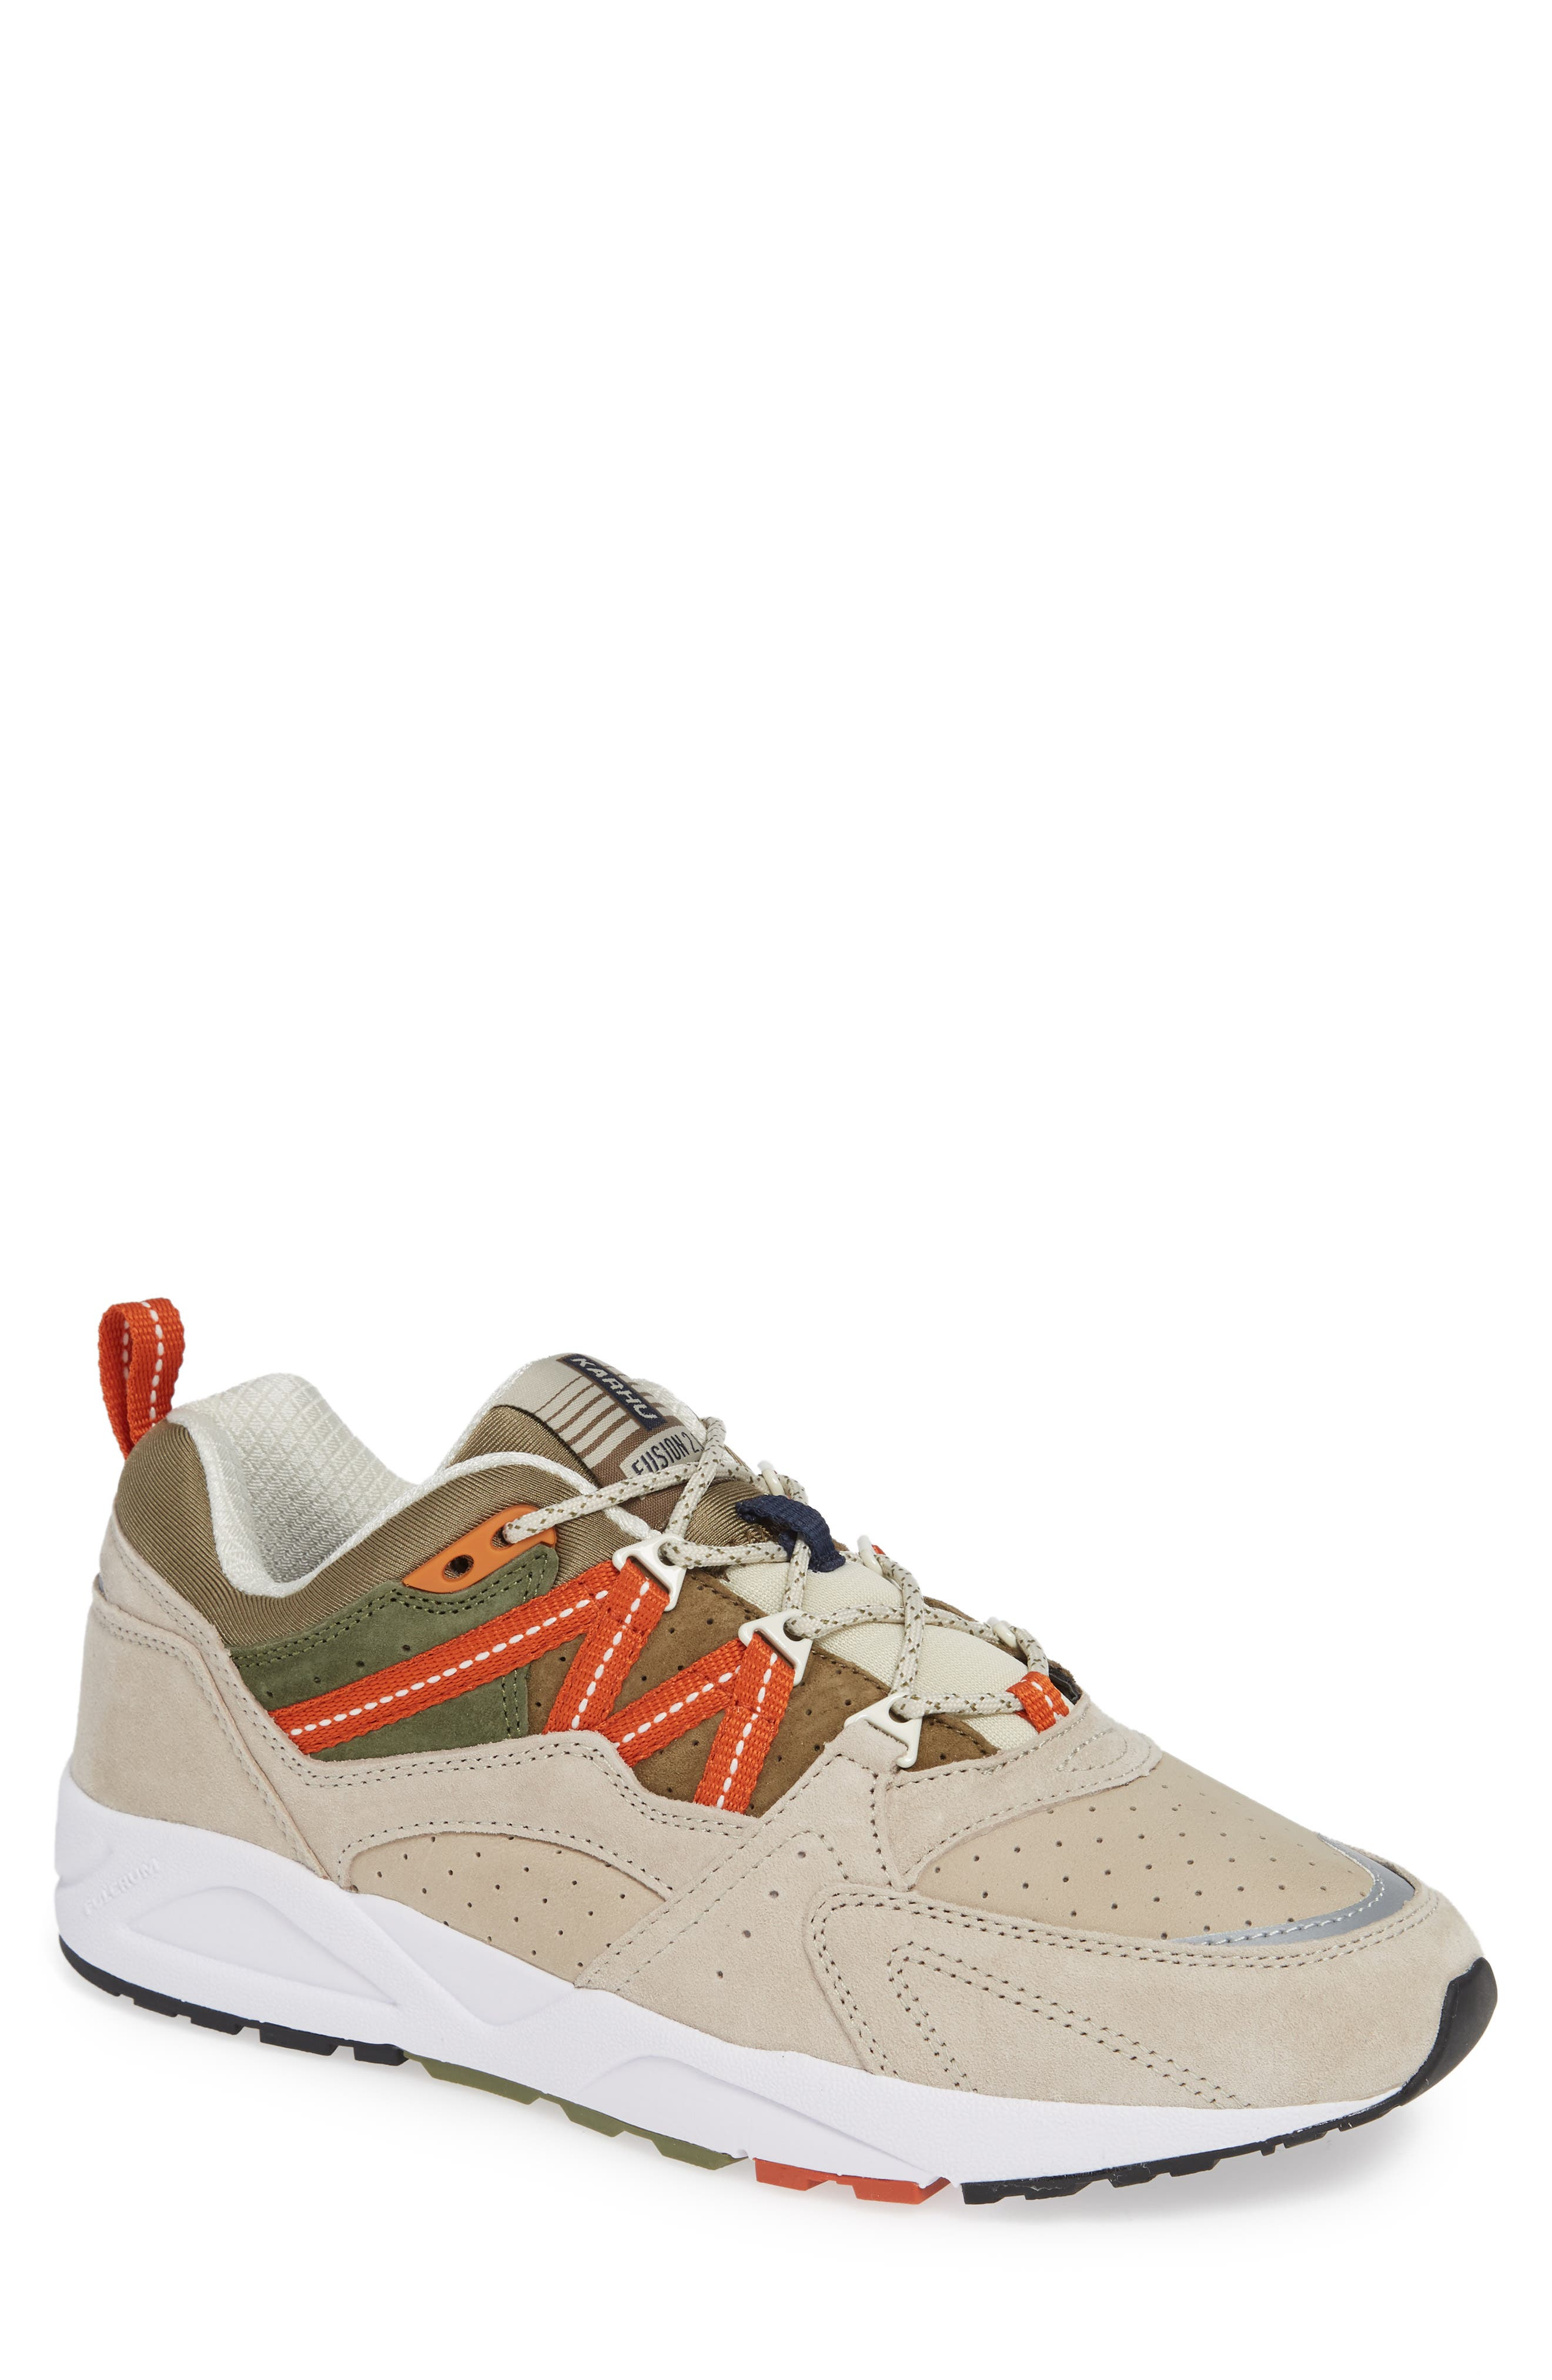 Fusion 2.0 Sneaker,                             Main thumbnail 1, color,                             PEYOTE / MILITARY OLIVE